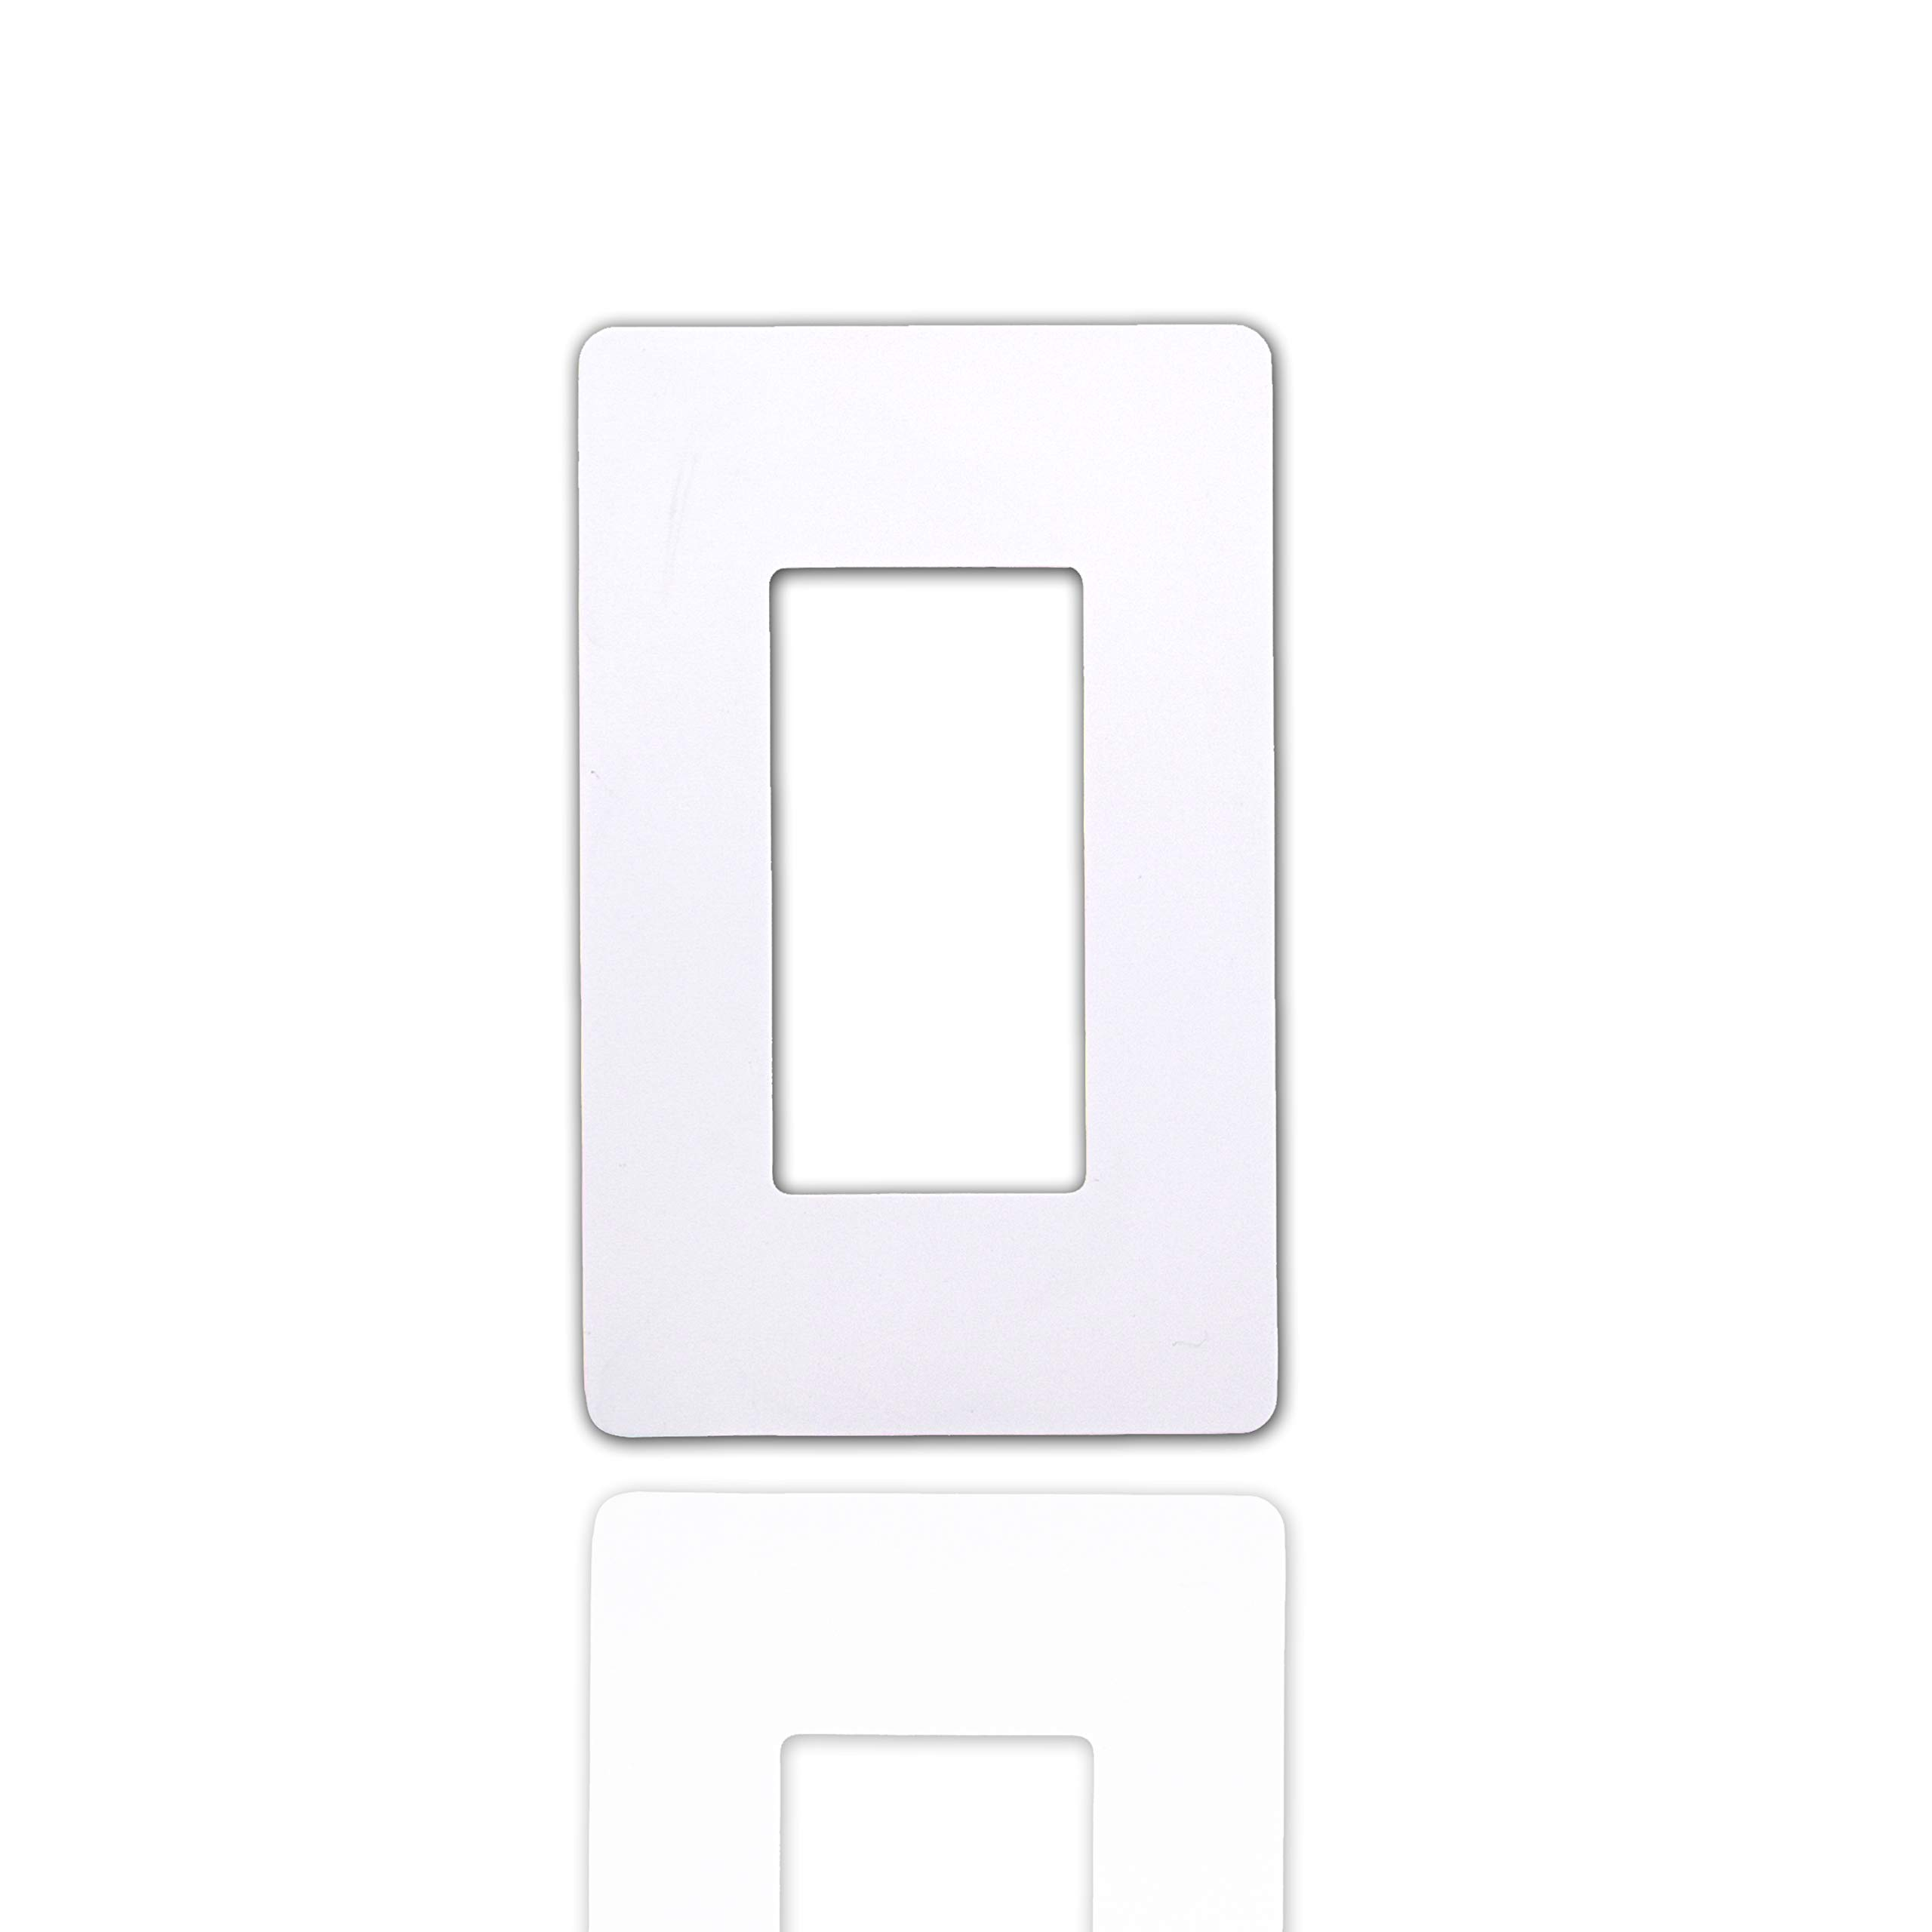 (20 Pack) NEXGEN 1 Single Gang Screwless Decorator, Wall Plate, Electrical Outlet Cover, Durable Polycarbonate, Compatible with any Outlet, White Finish